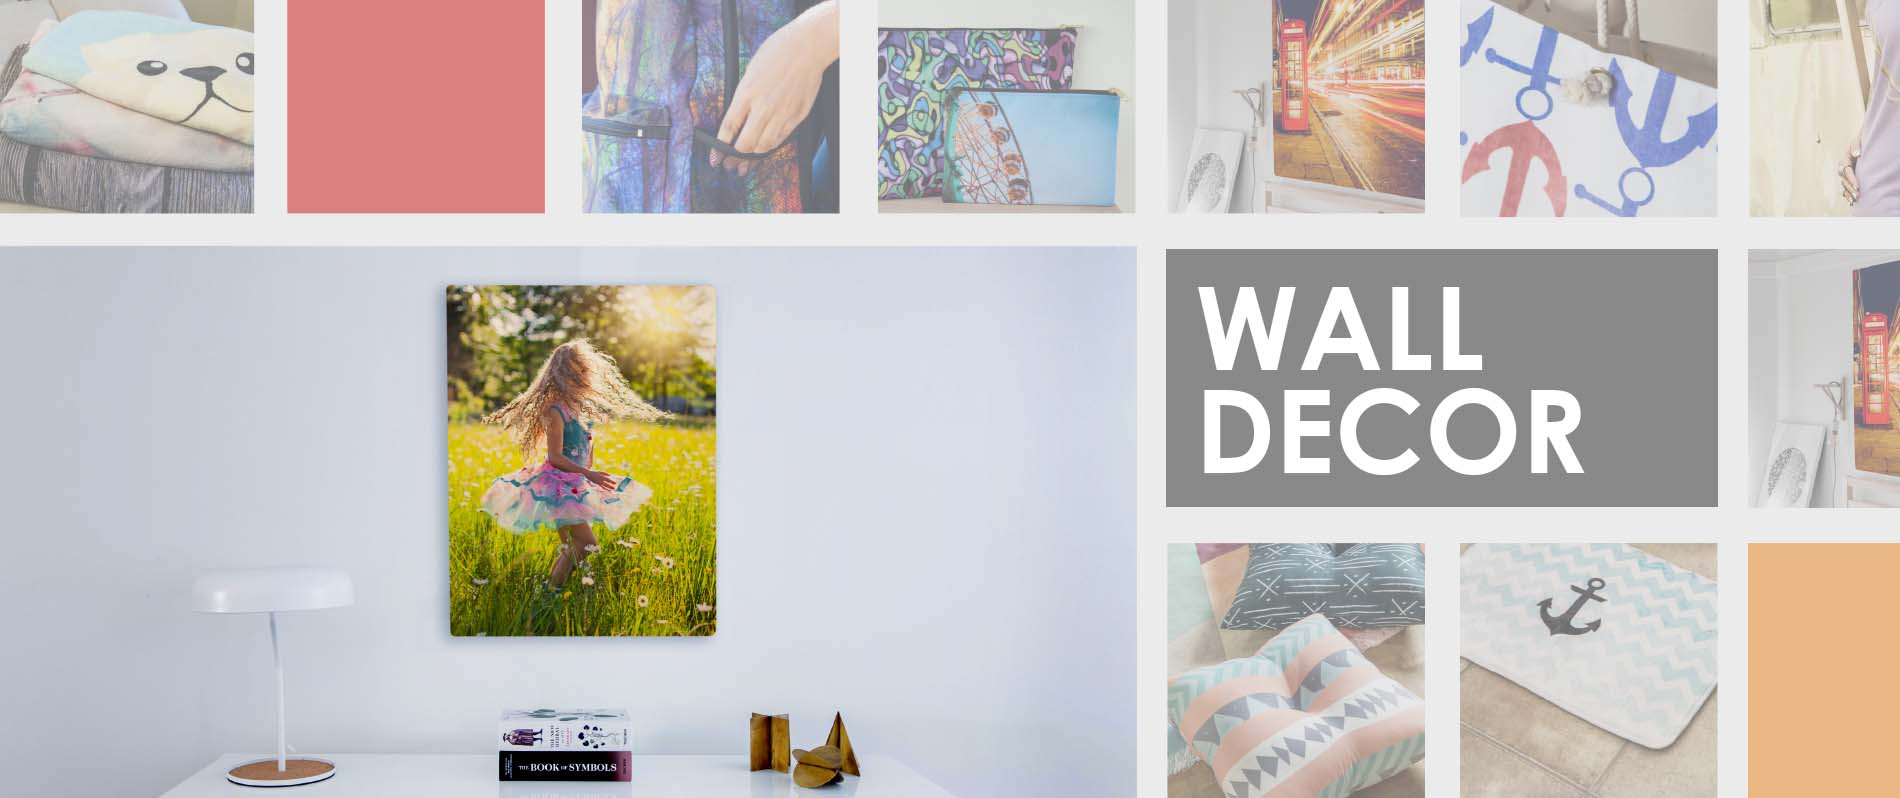 Custom printed home decor, accessories, and apparel!